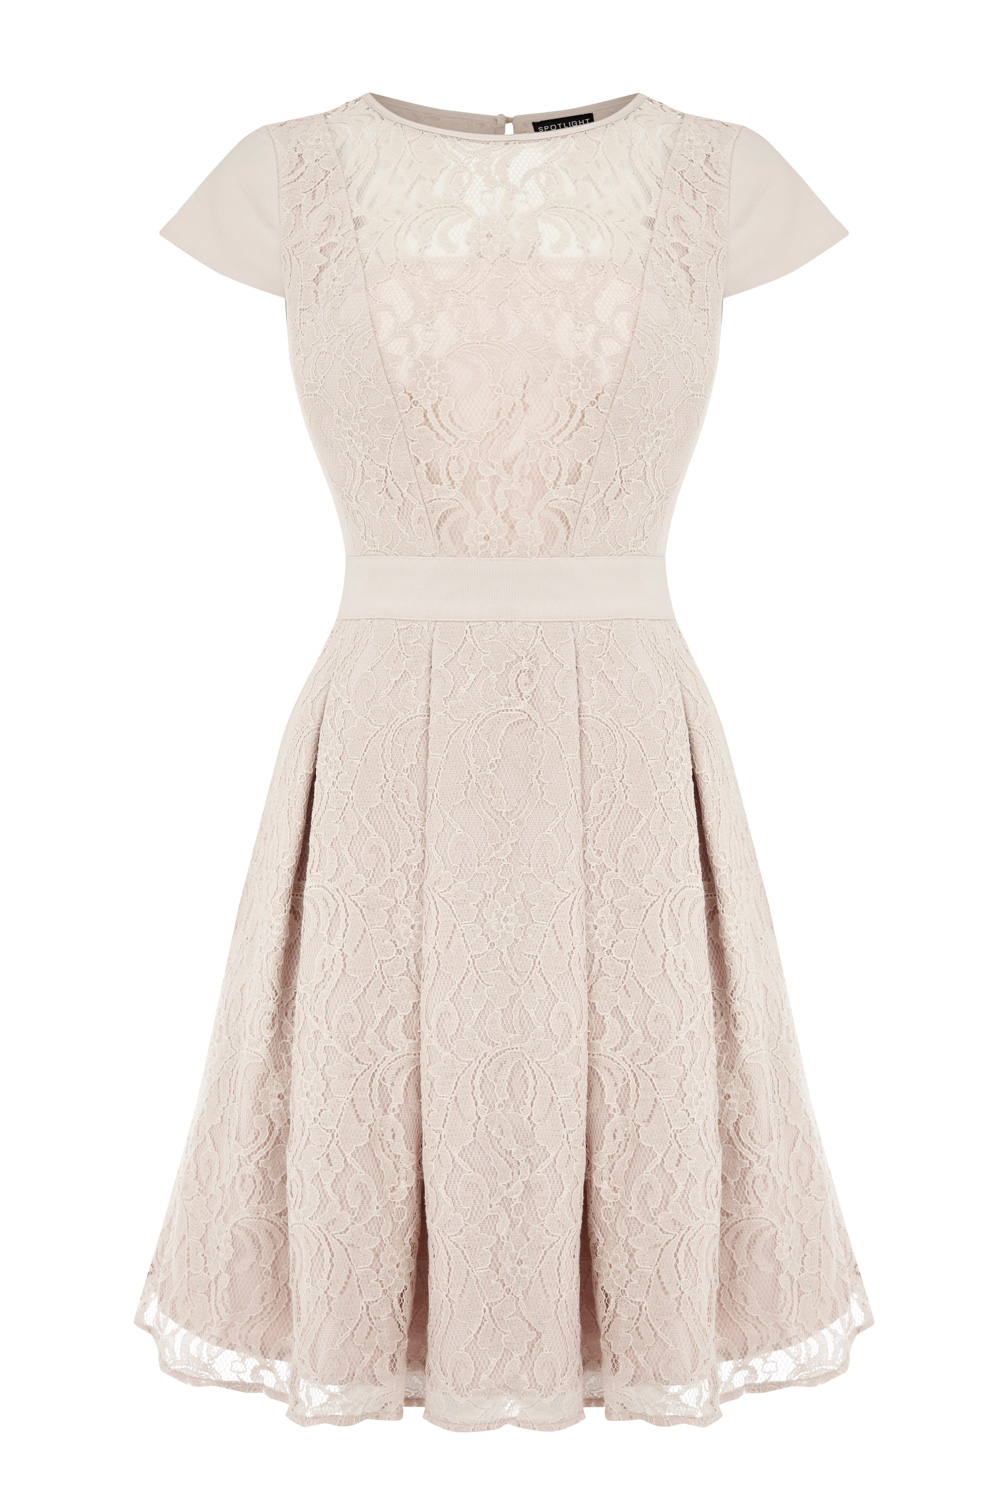 party dresses for wedding guest photo - 1